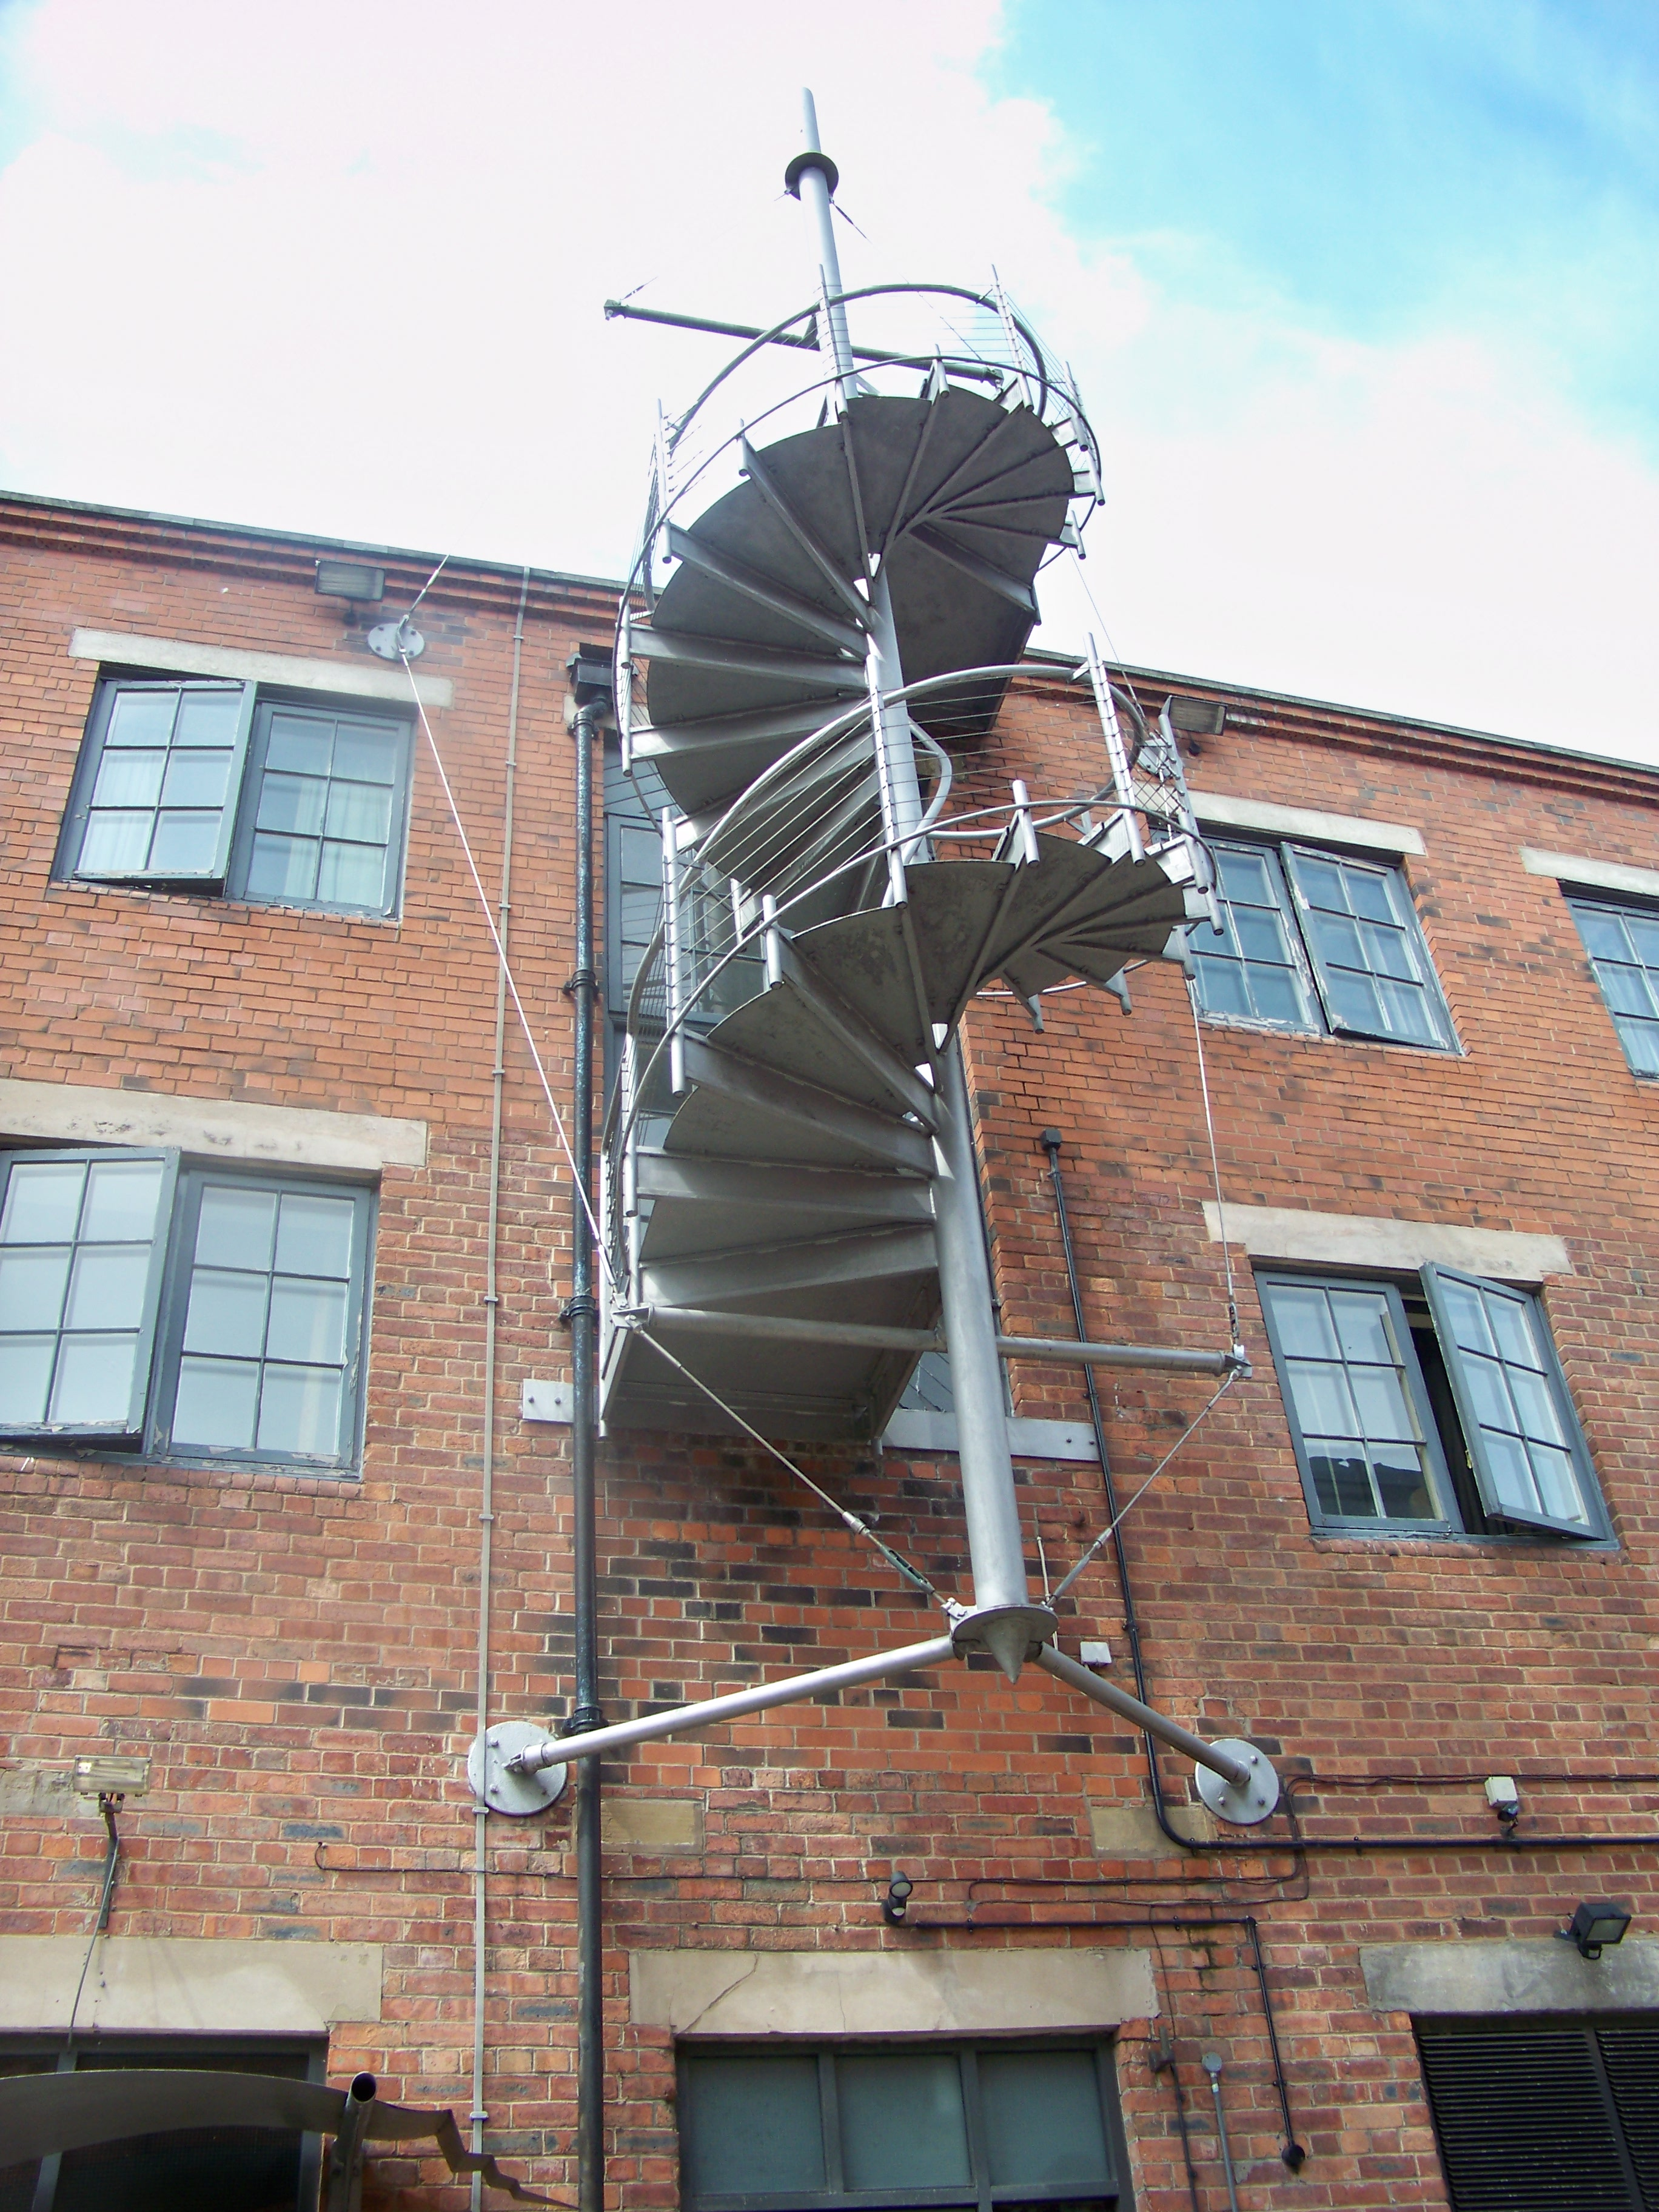 File:Outdoor Staircase On A Building On The Calls, Leeds (24th June 2010